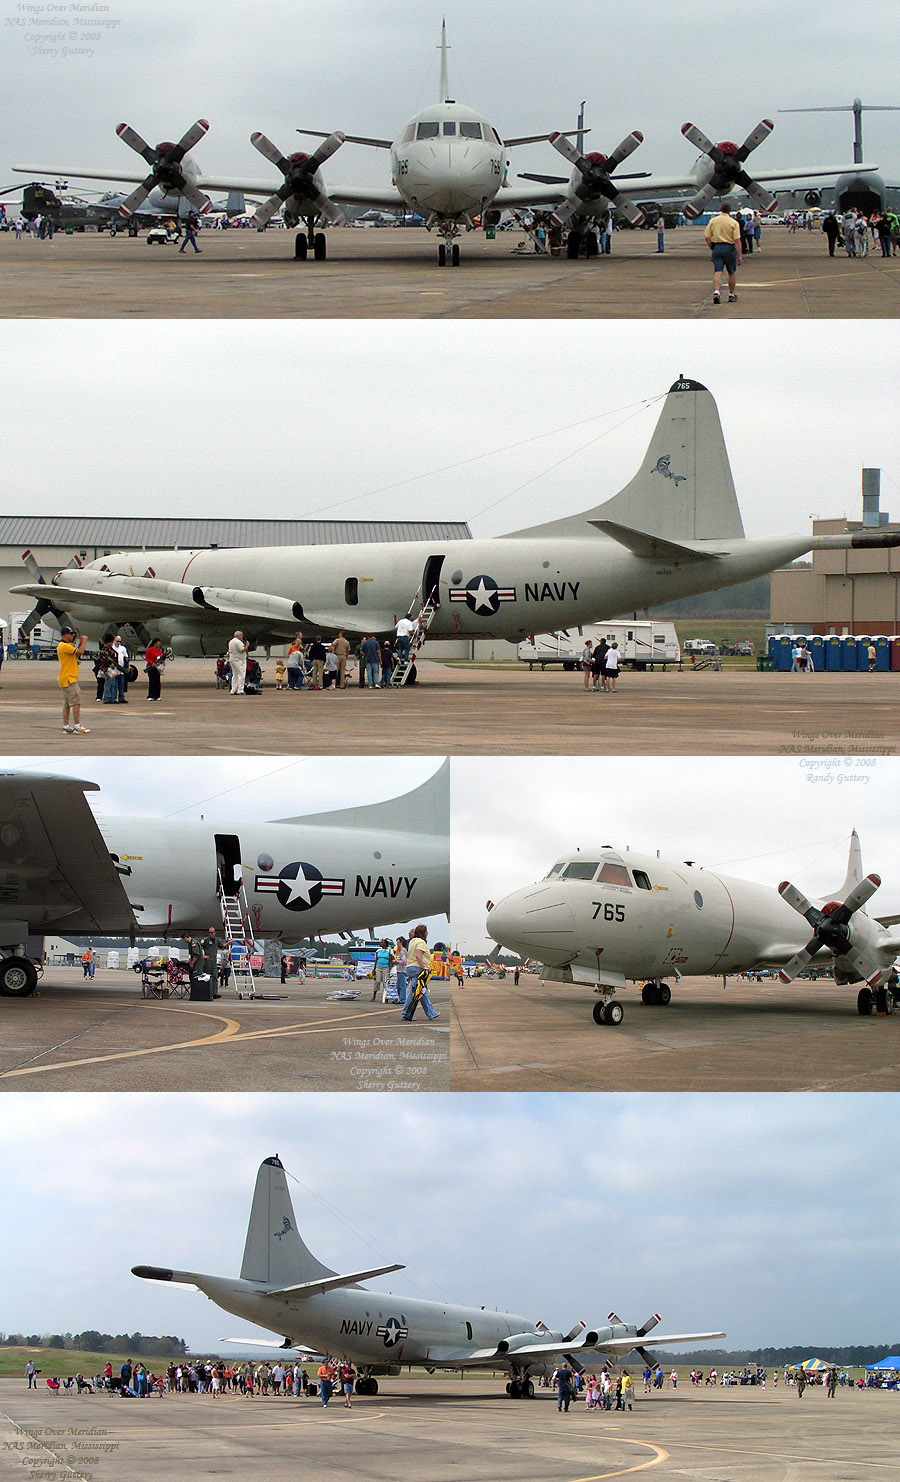 P-3C Orion.  This Navy version is a submarine hunter/killer.